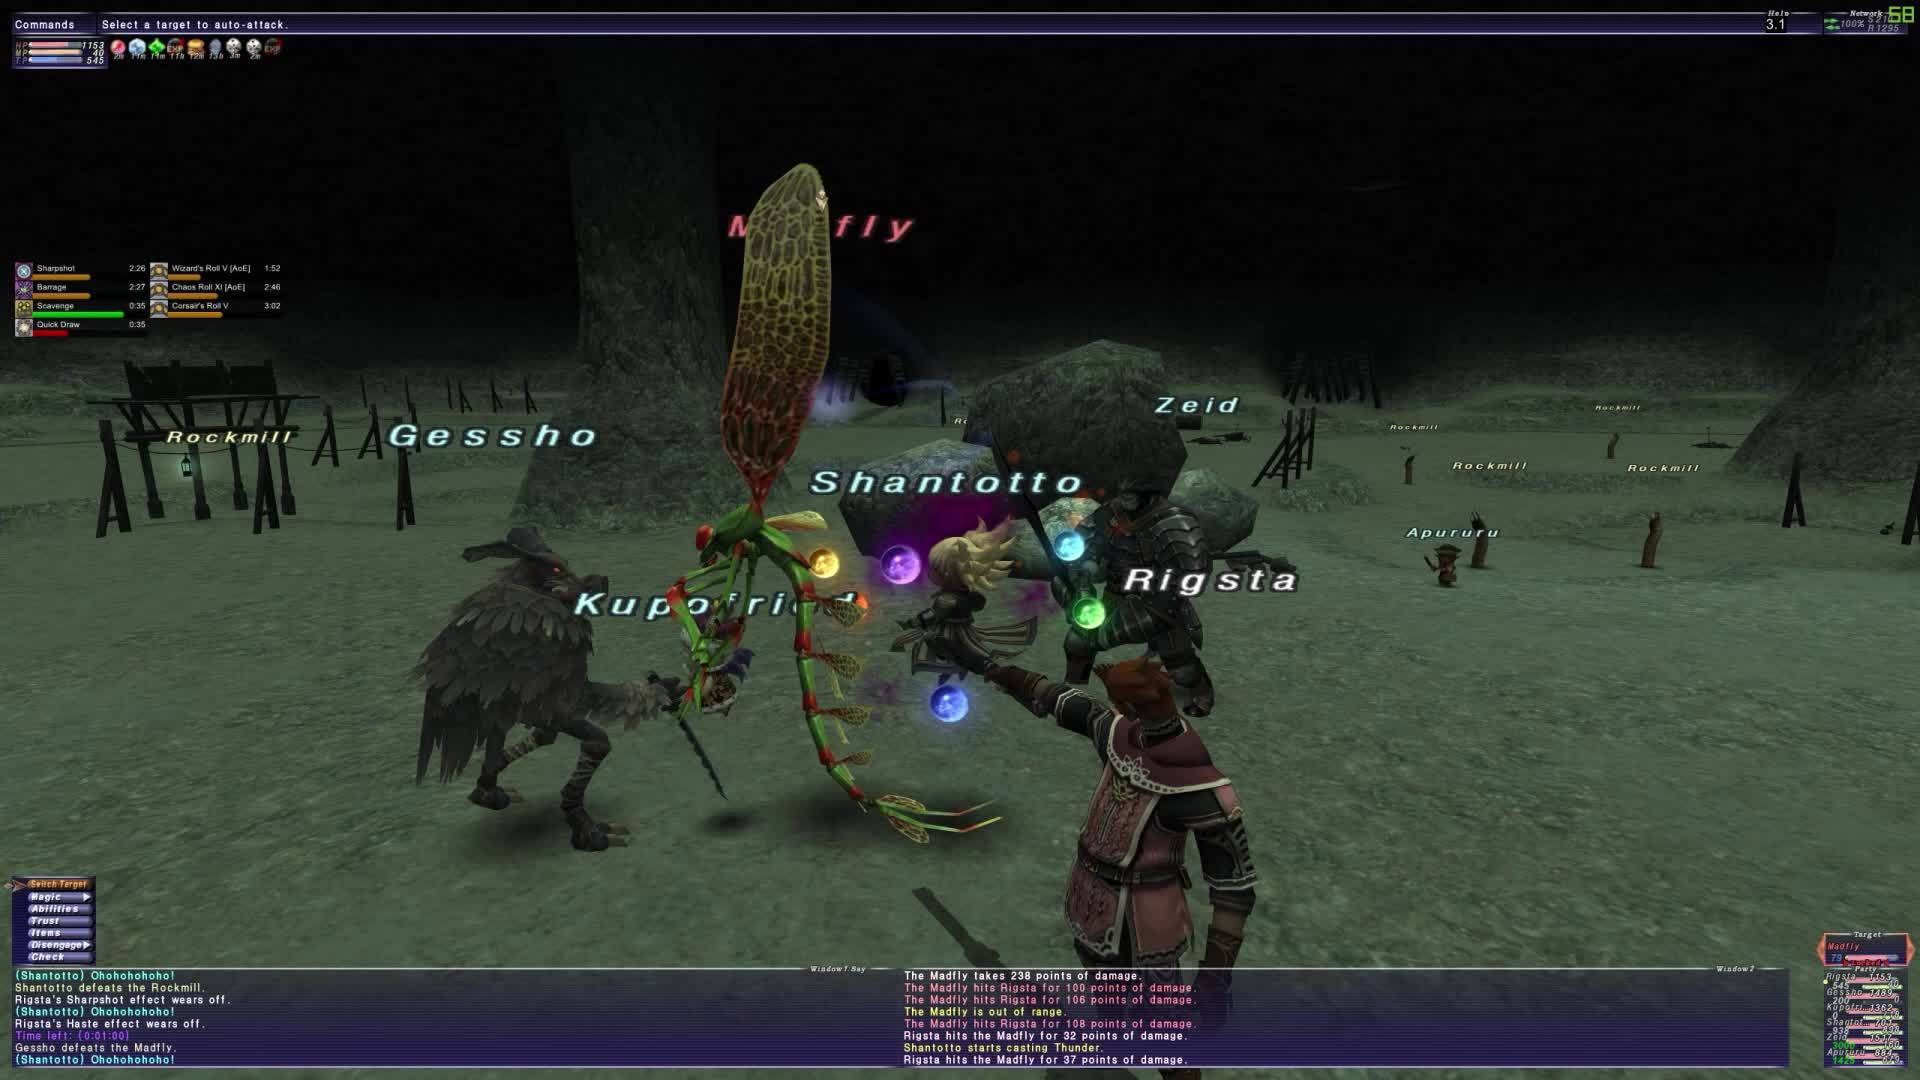 Ffxi Gifs Search | Search & Share on Homdor